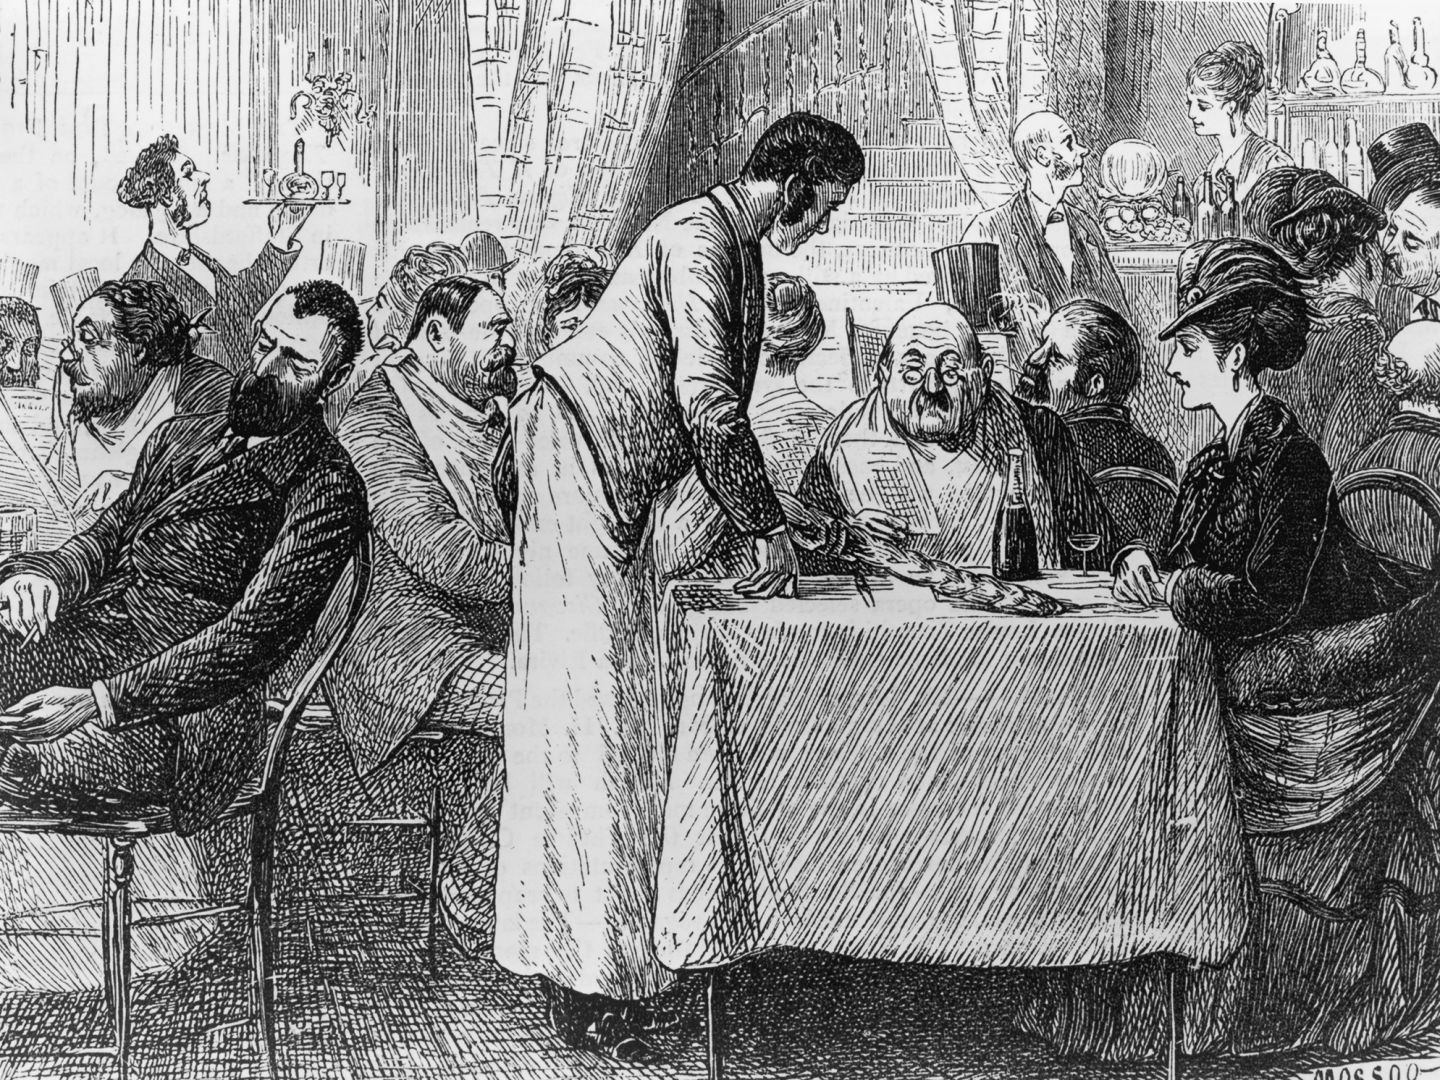 When Tipping Was Considered Deeply Un-American